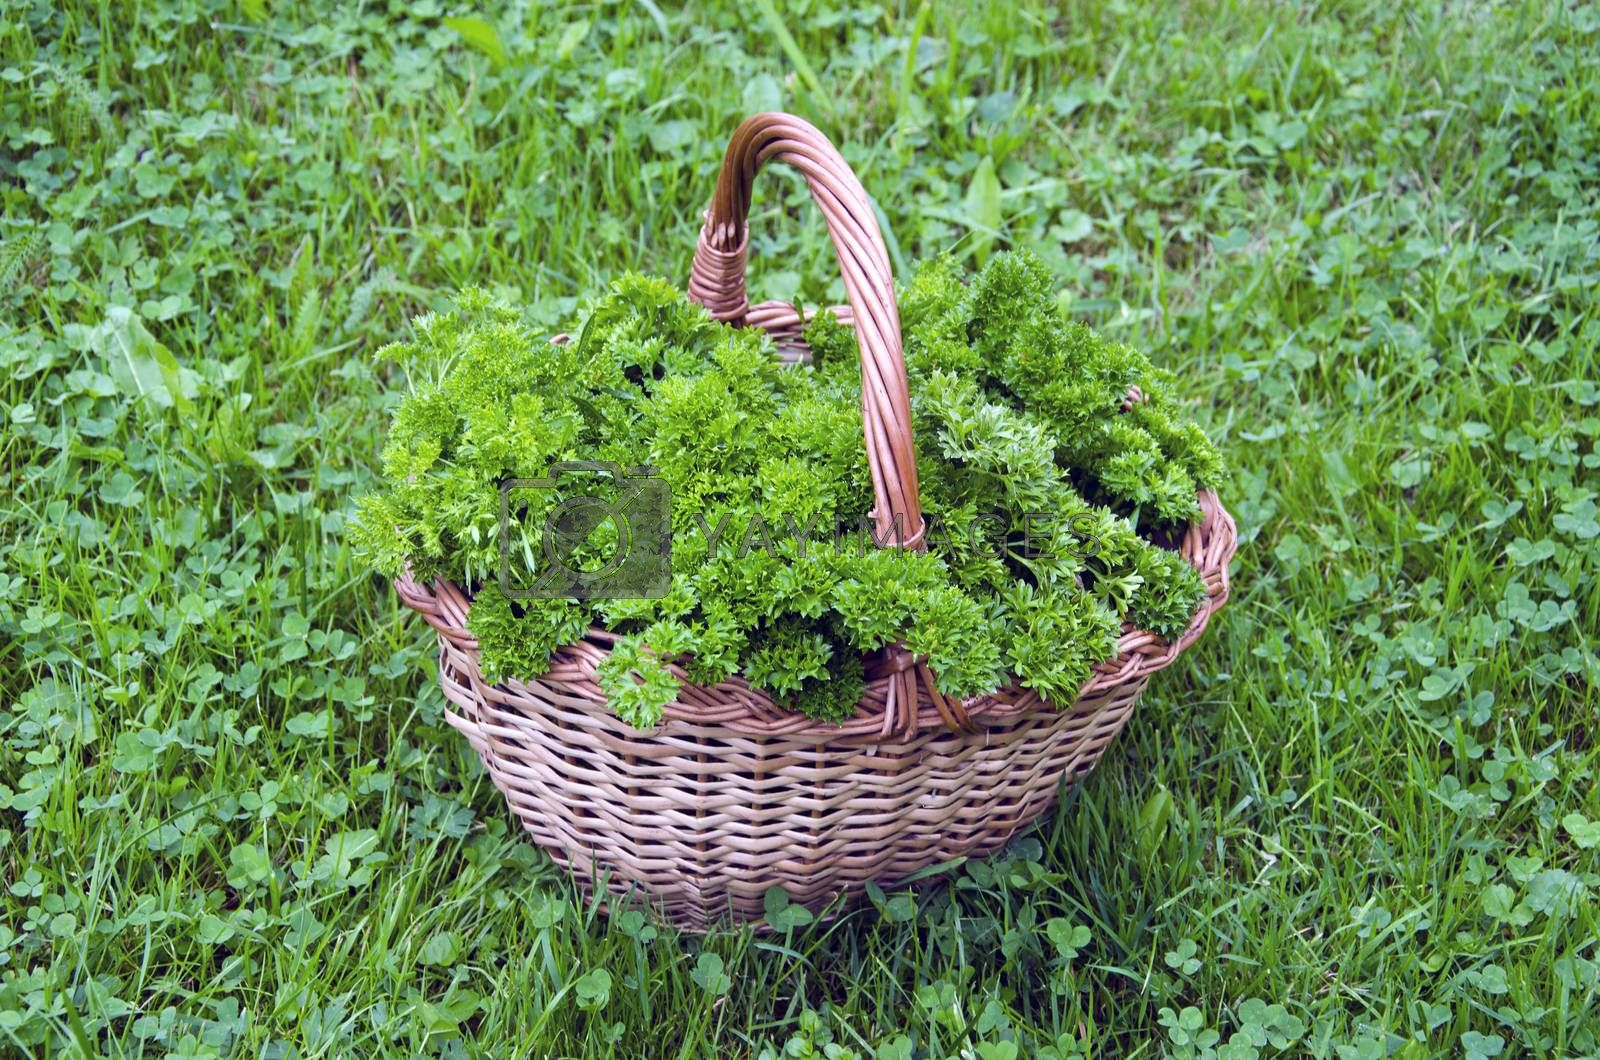 Royalty free image of Fresh parsley in wicker basket on lawn by alis_photo